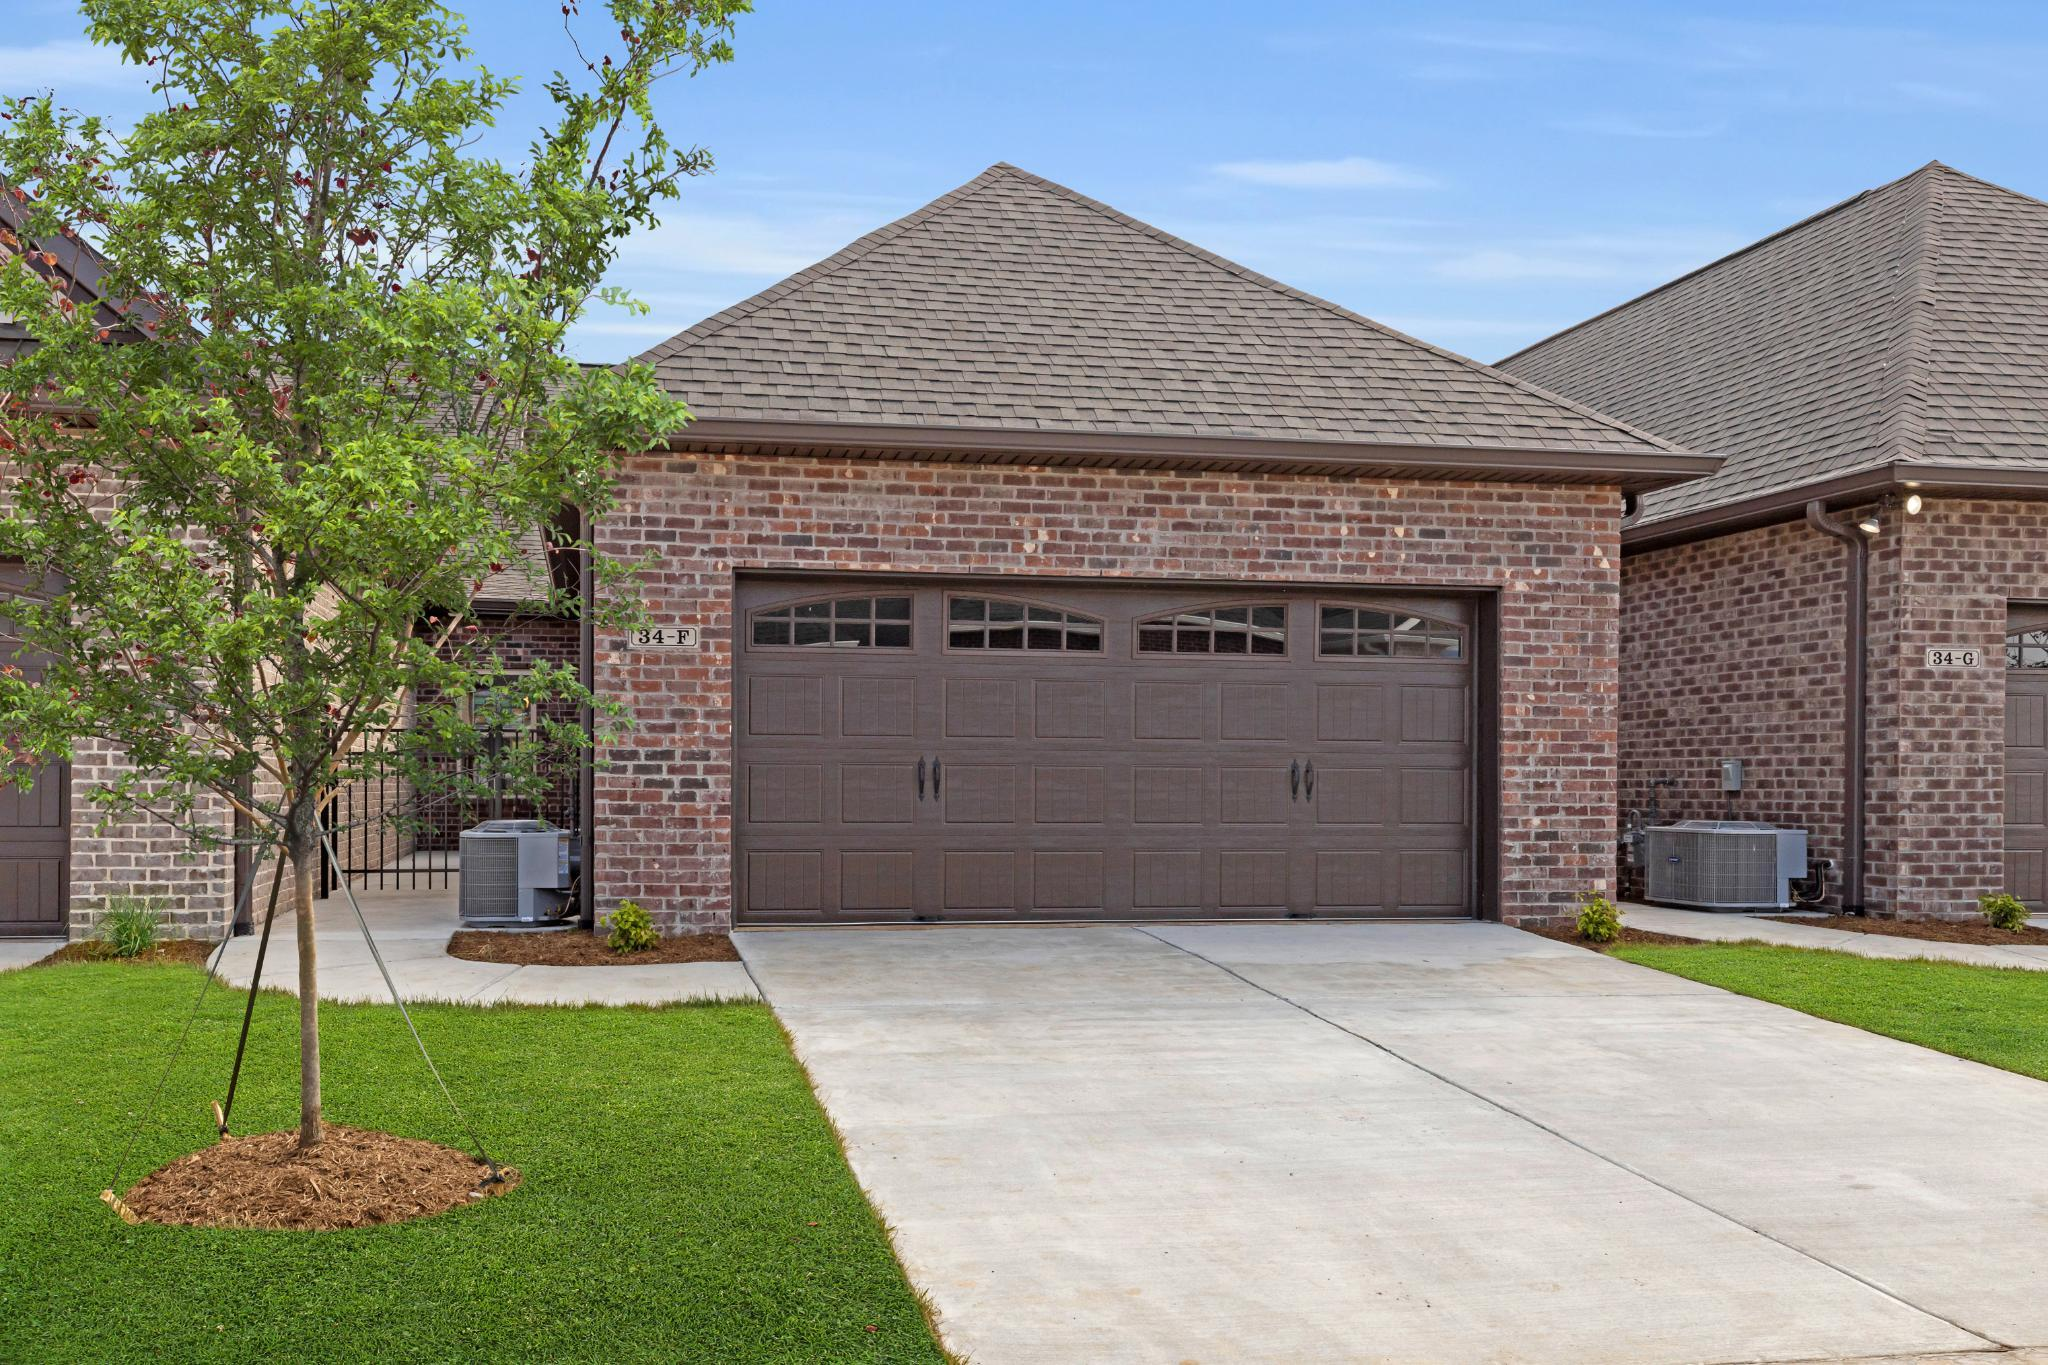 Exterior featured in The Waverleigh Courtyard Cottage By Goodall Homes in Chattanooga, GA